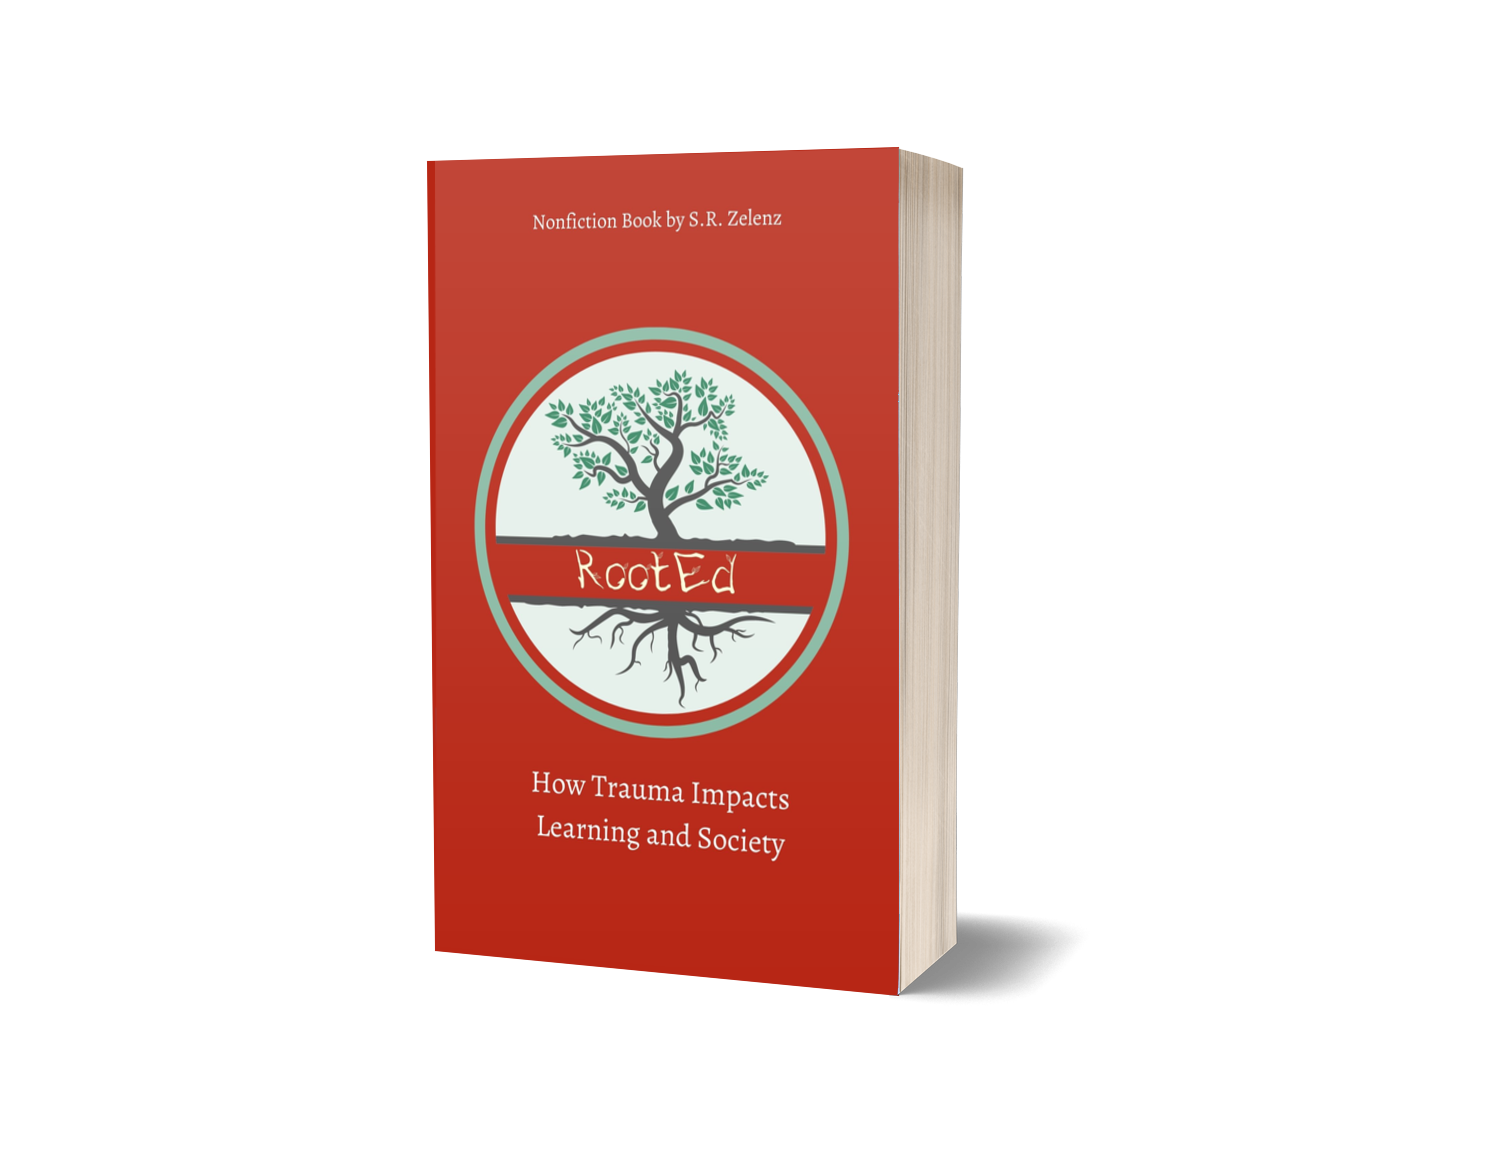 RootEd: How Trauma Impacts Learning & Society S. R. Zelenz Book Cover